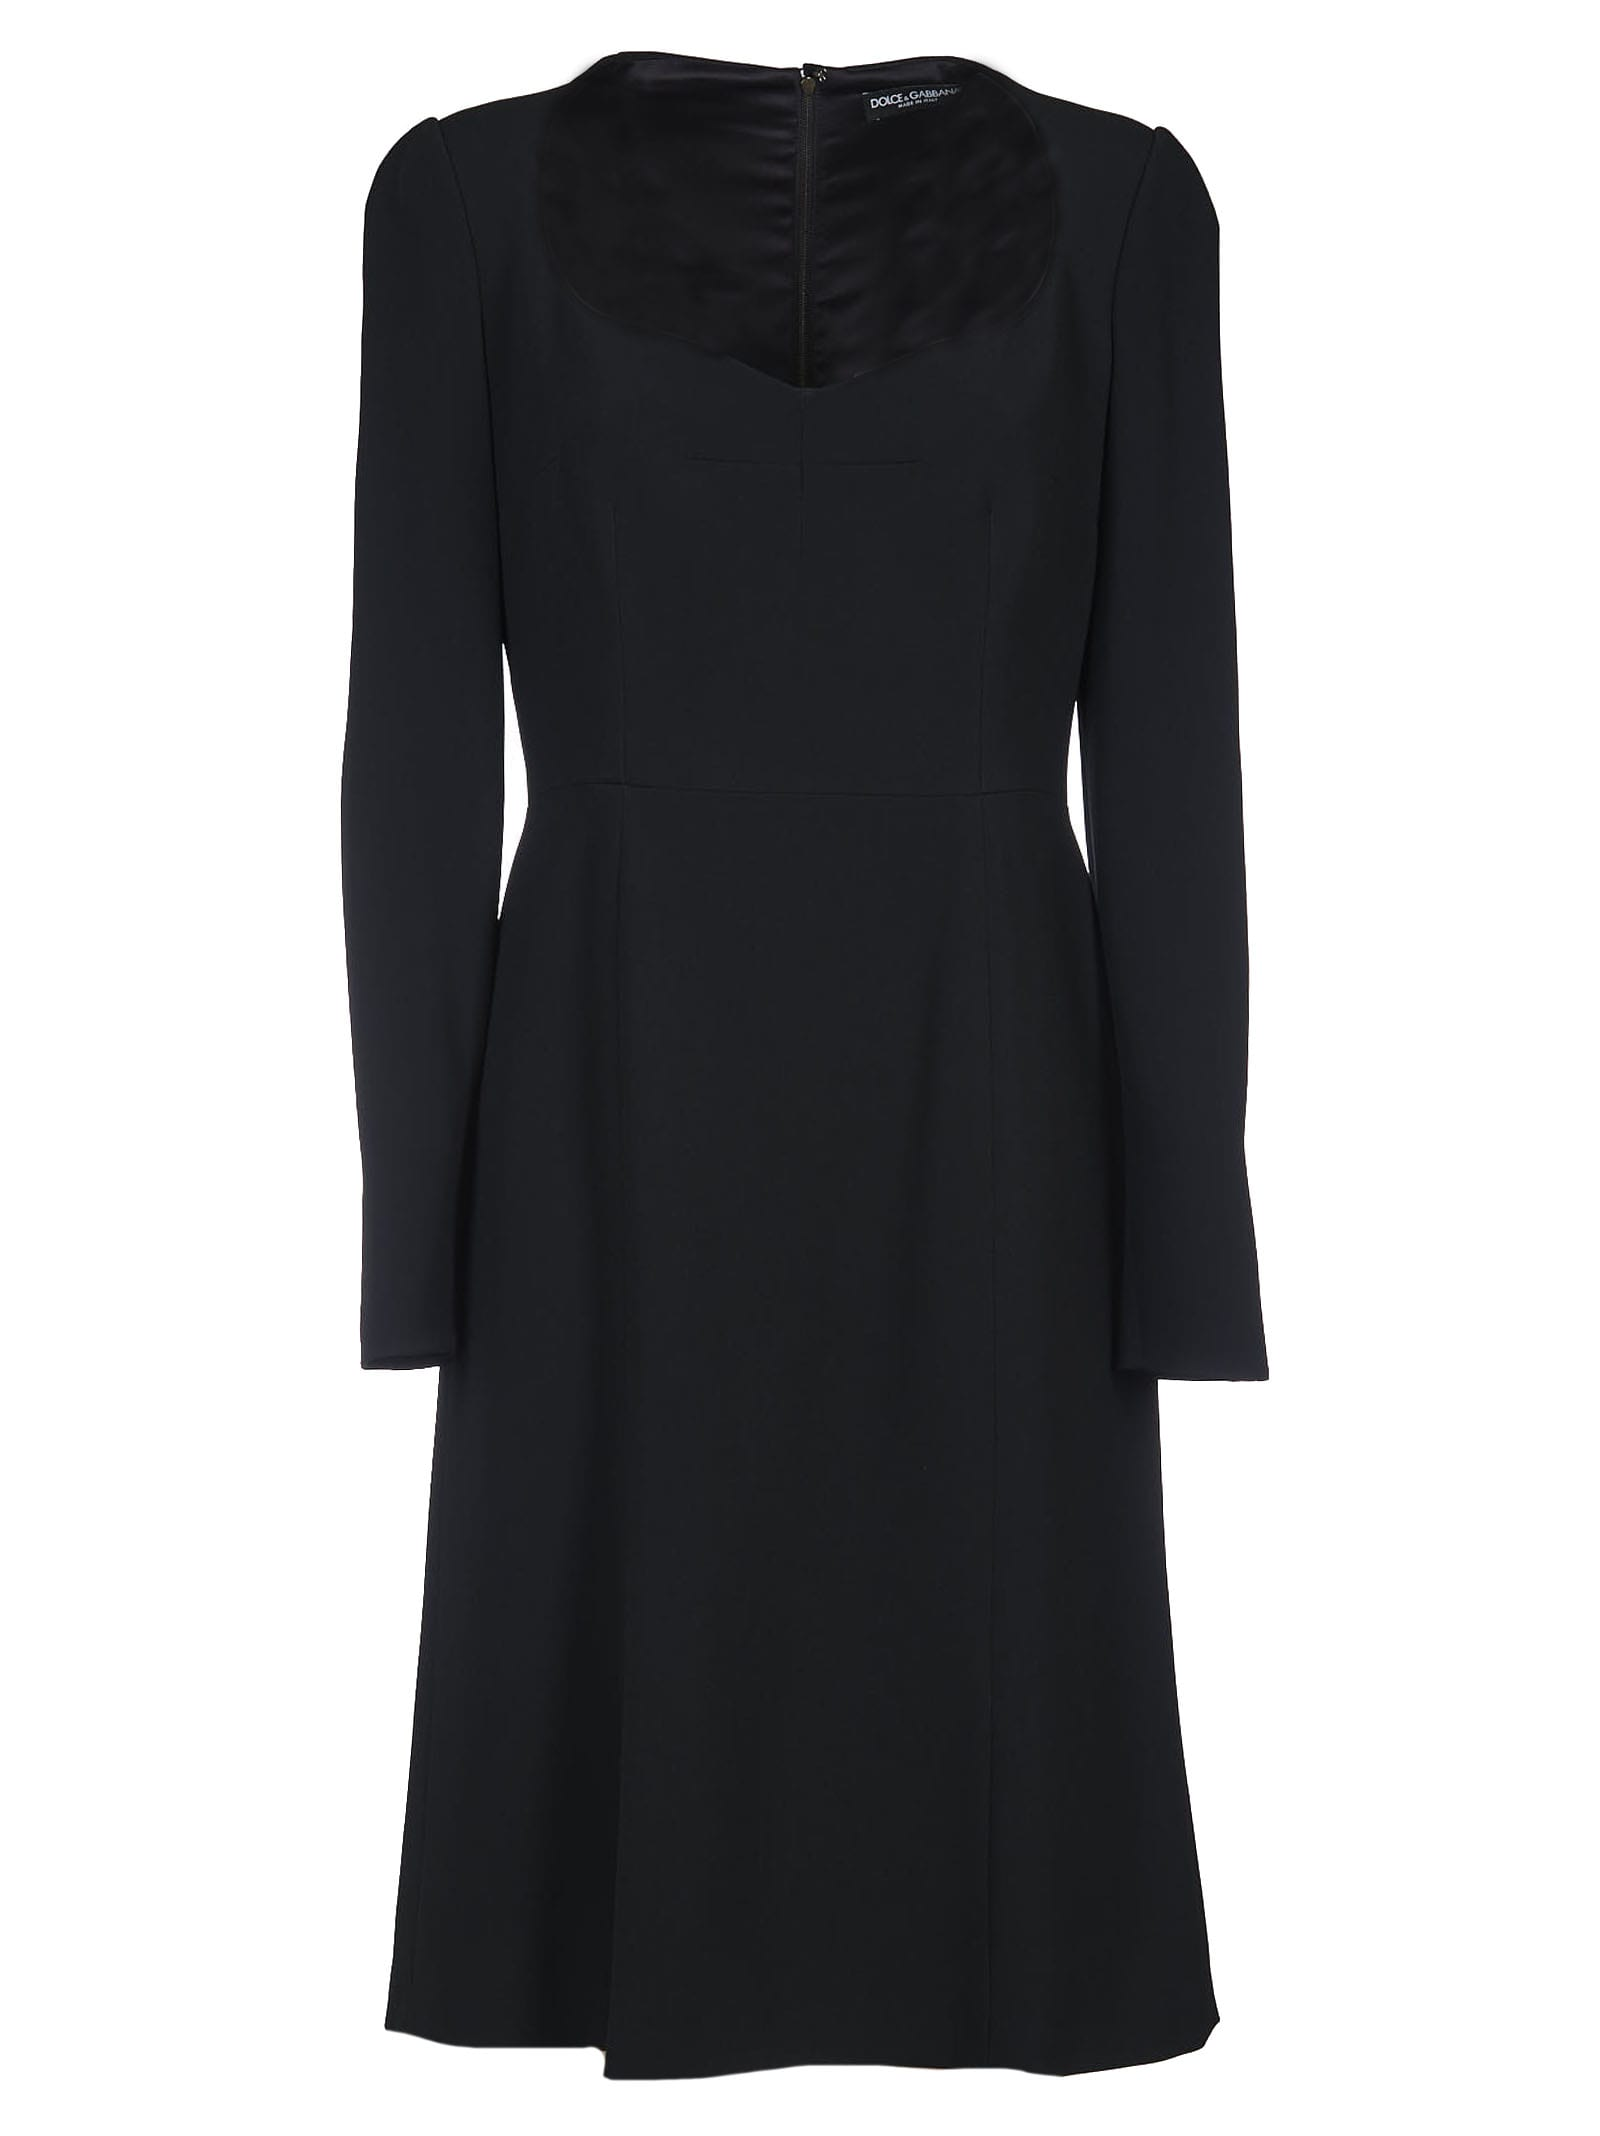 Buy Dolce & Gabbana Large Round Neck Dress online, shop Dolce & Gabbana with free shipping